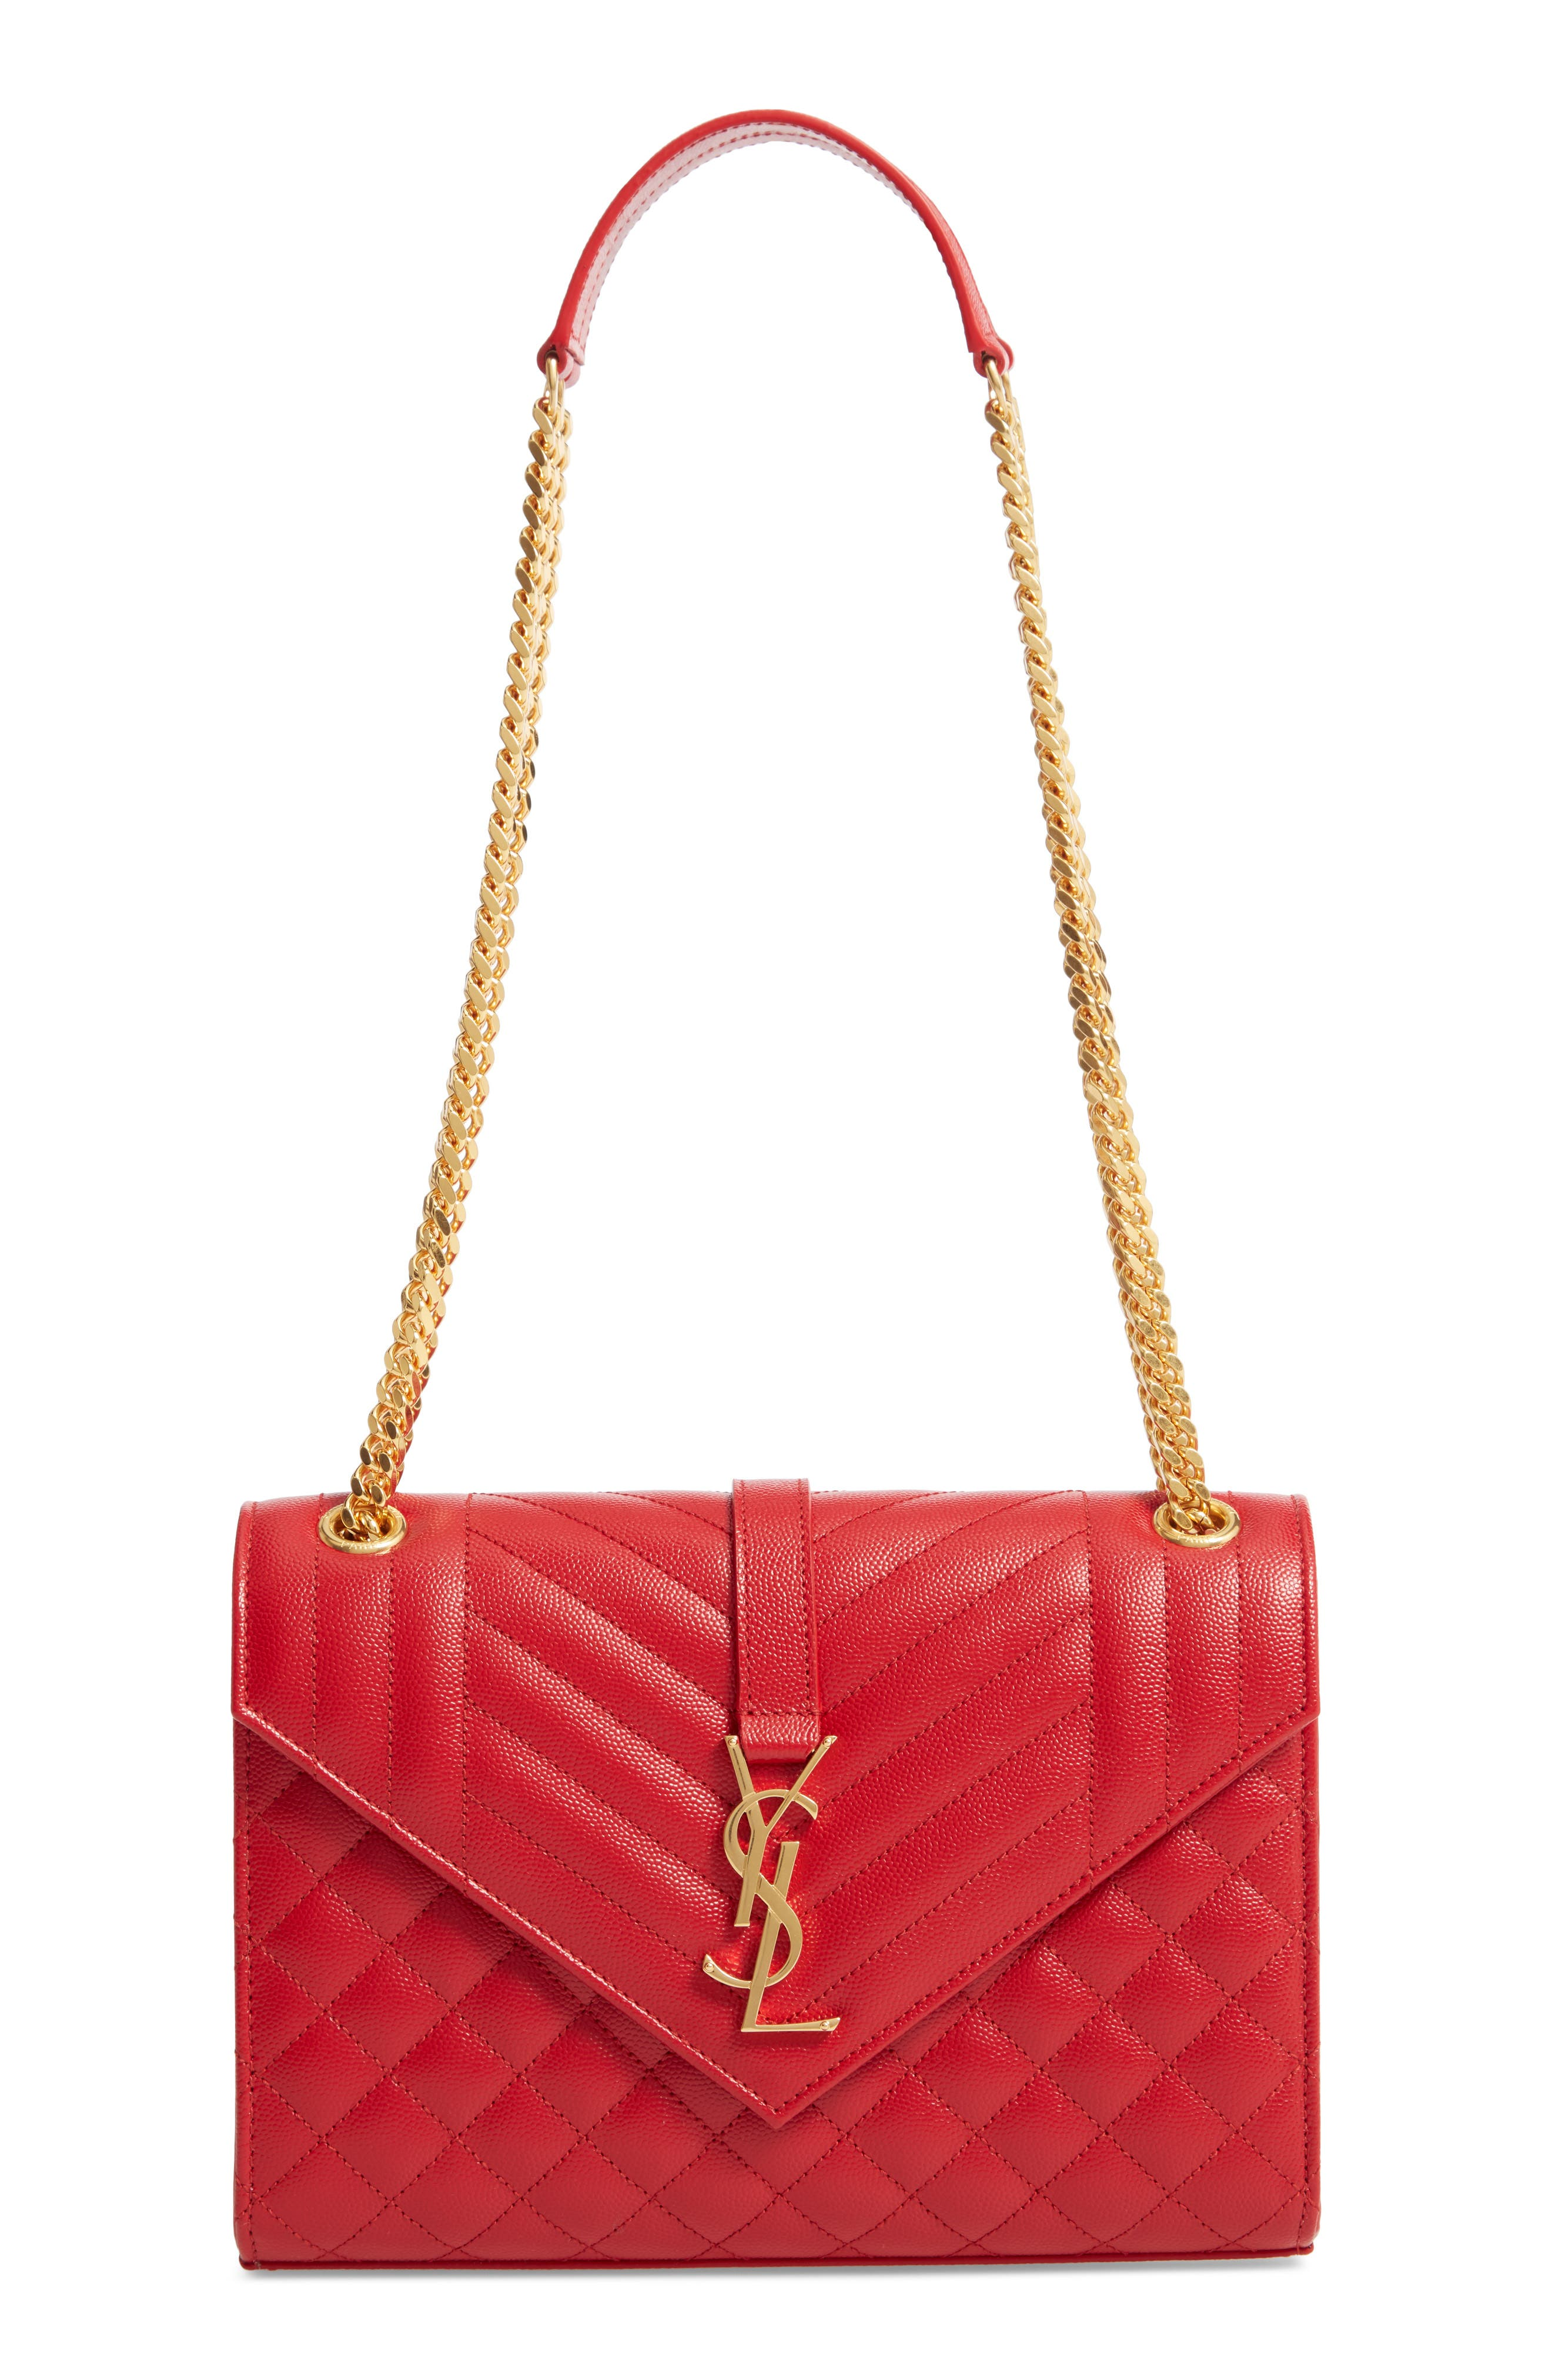 Medium Cassandre Calfskin Shoulder Bag,                             Main thumbnail 1, color,                             BANDANA RED